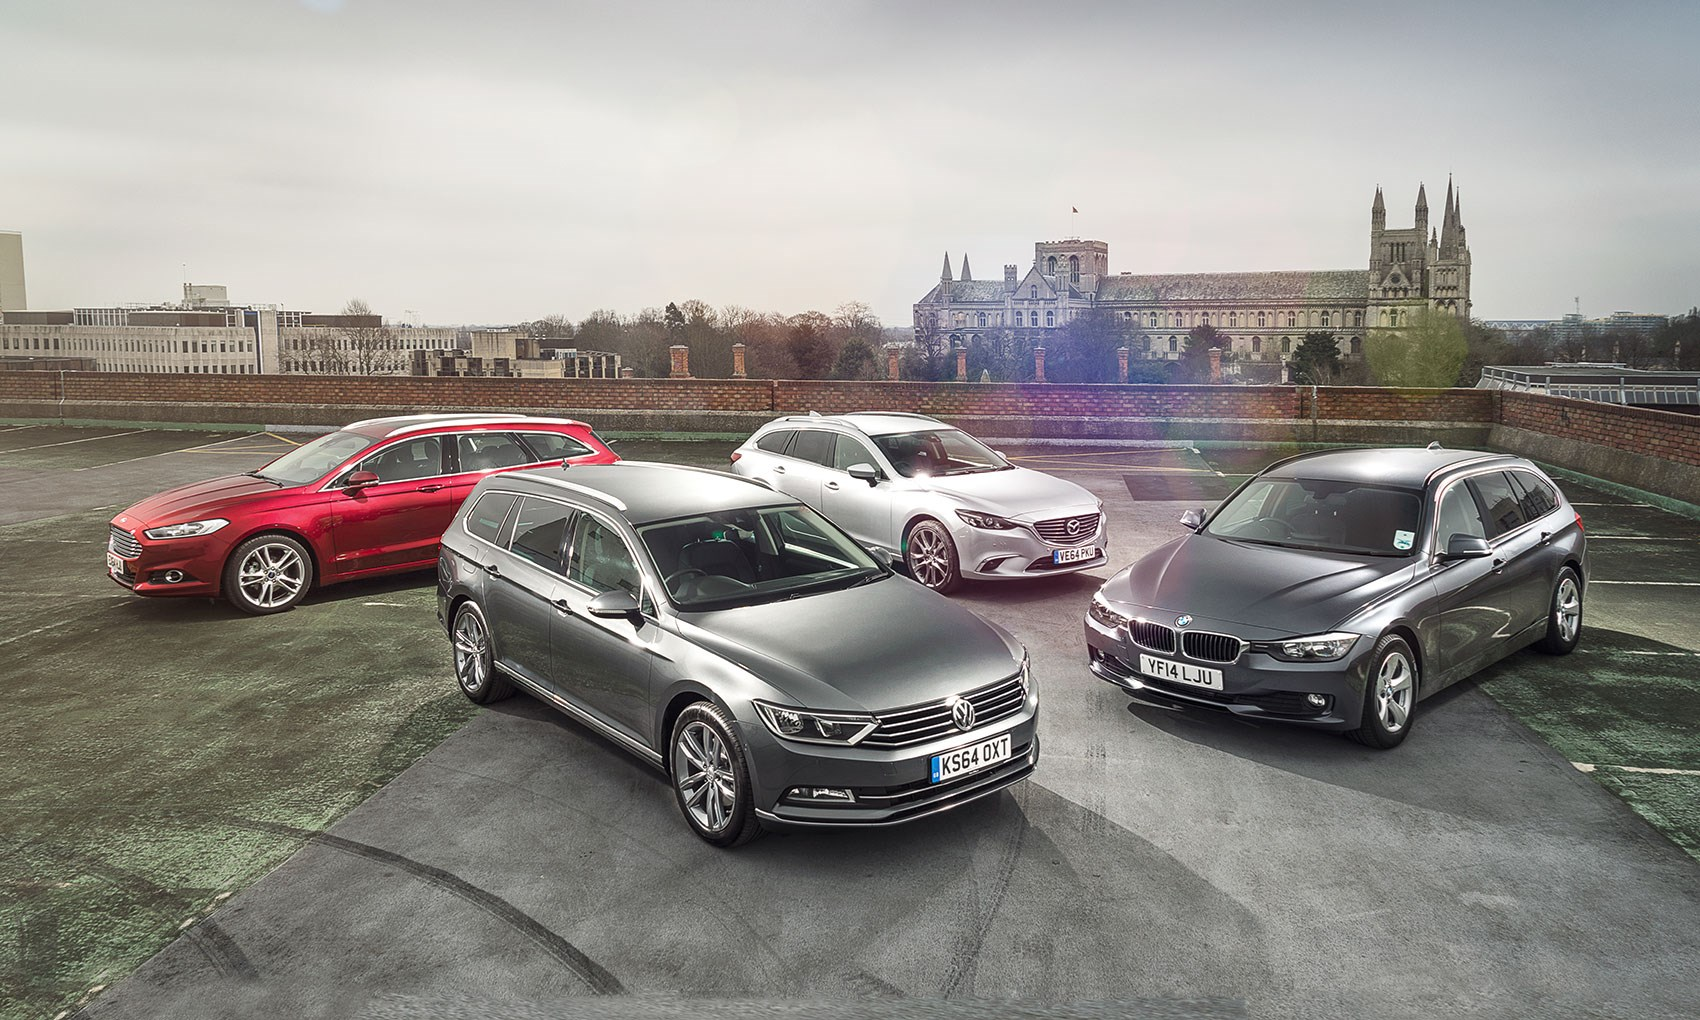 And the best family estate car is. & VW Passat Estate vs Ford Mondeo vs BMW 3-series Touring vs Mazda 6 ... markmcfarlin.com